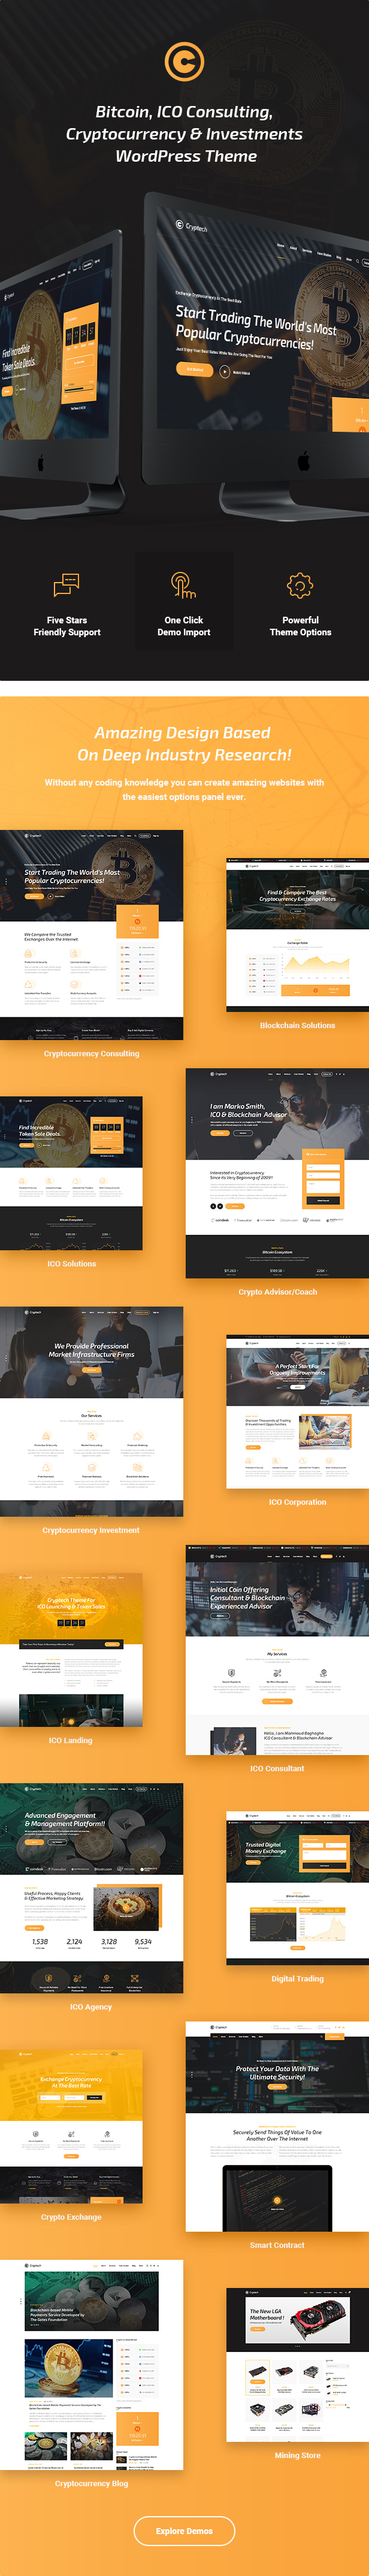 Cryptech - Investments, Consulting, ICO and Cryptocurrency WordPress Theme - 4